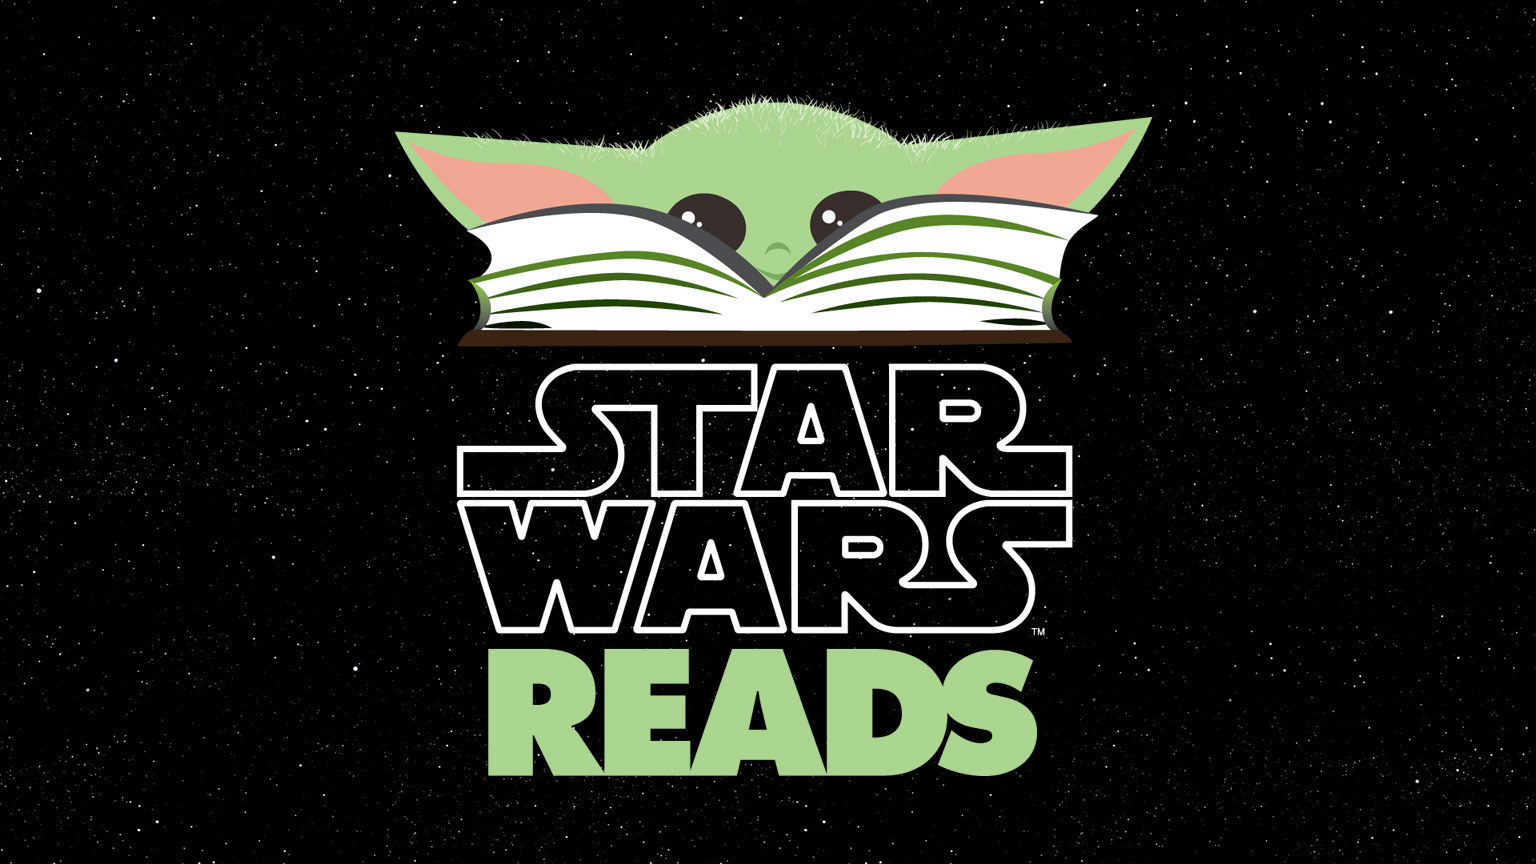 Celebrate Star Wars Reads This October!